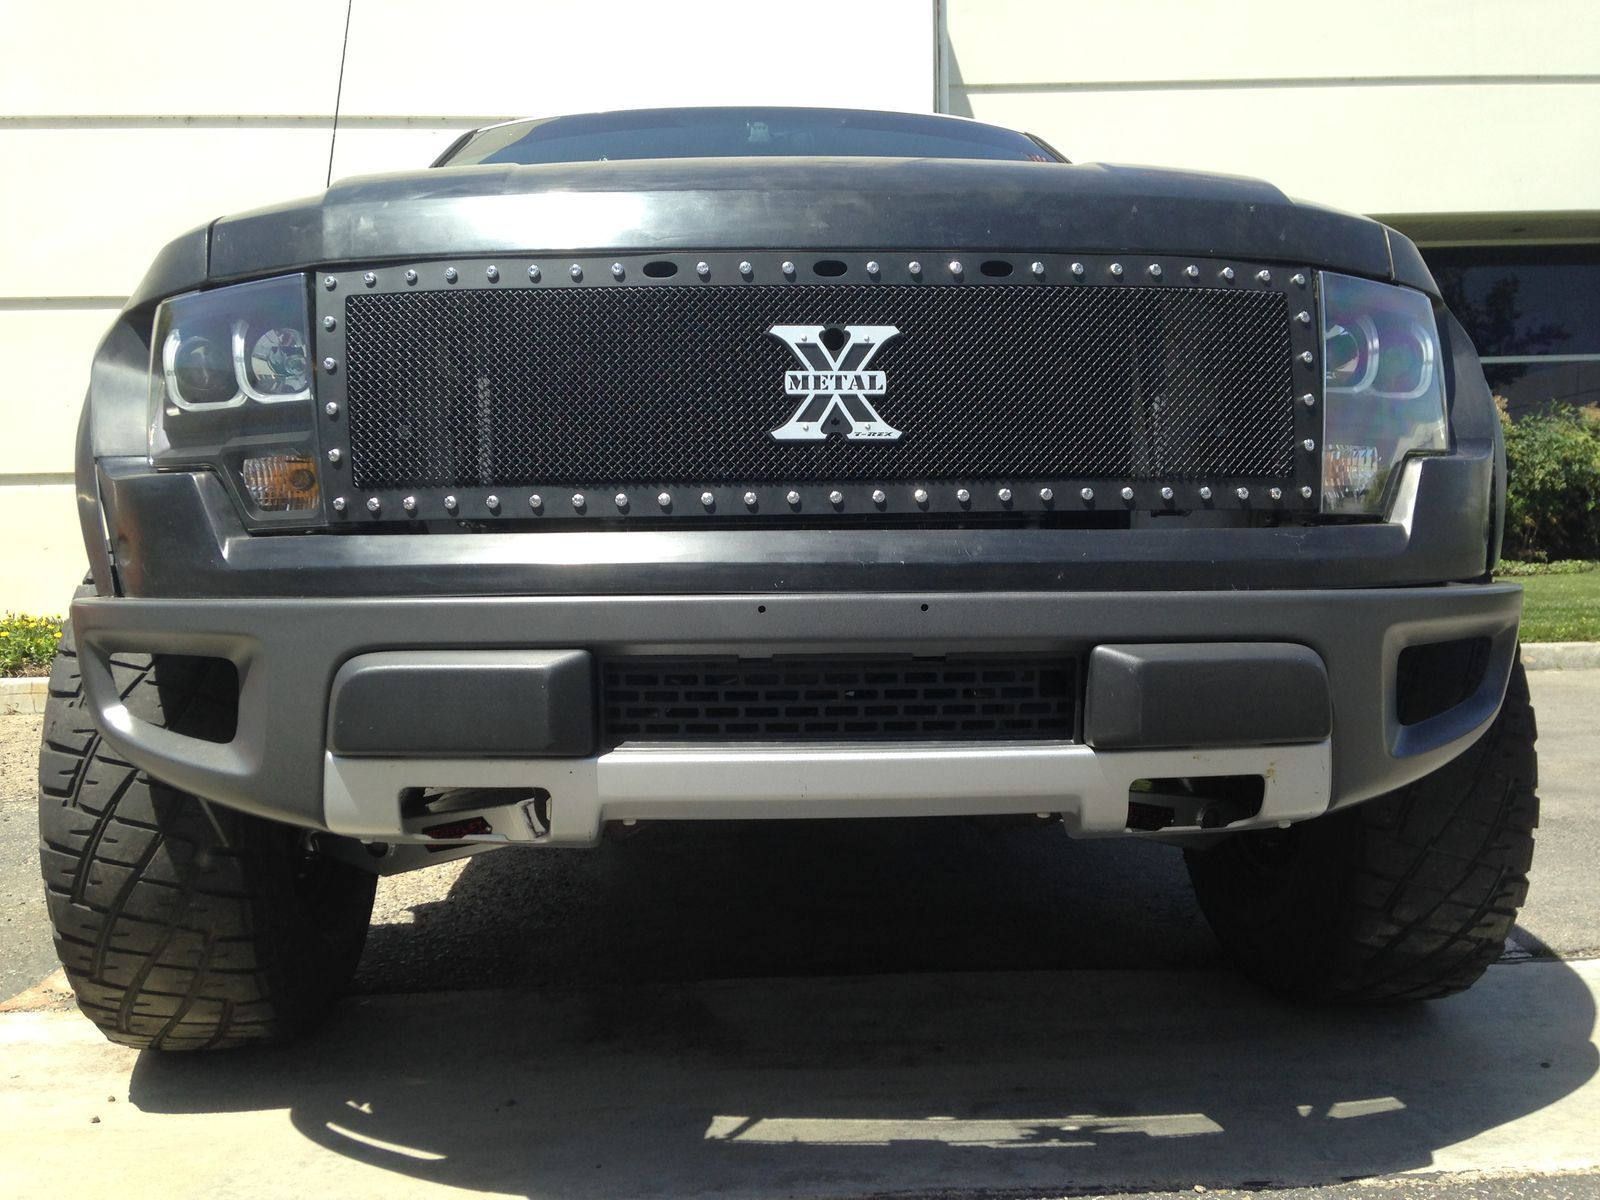 2004 Ford F-150 | Ford F150 Off-Road Raptor Suspension Conversion - Front End Shot